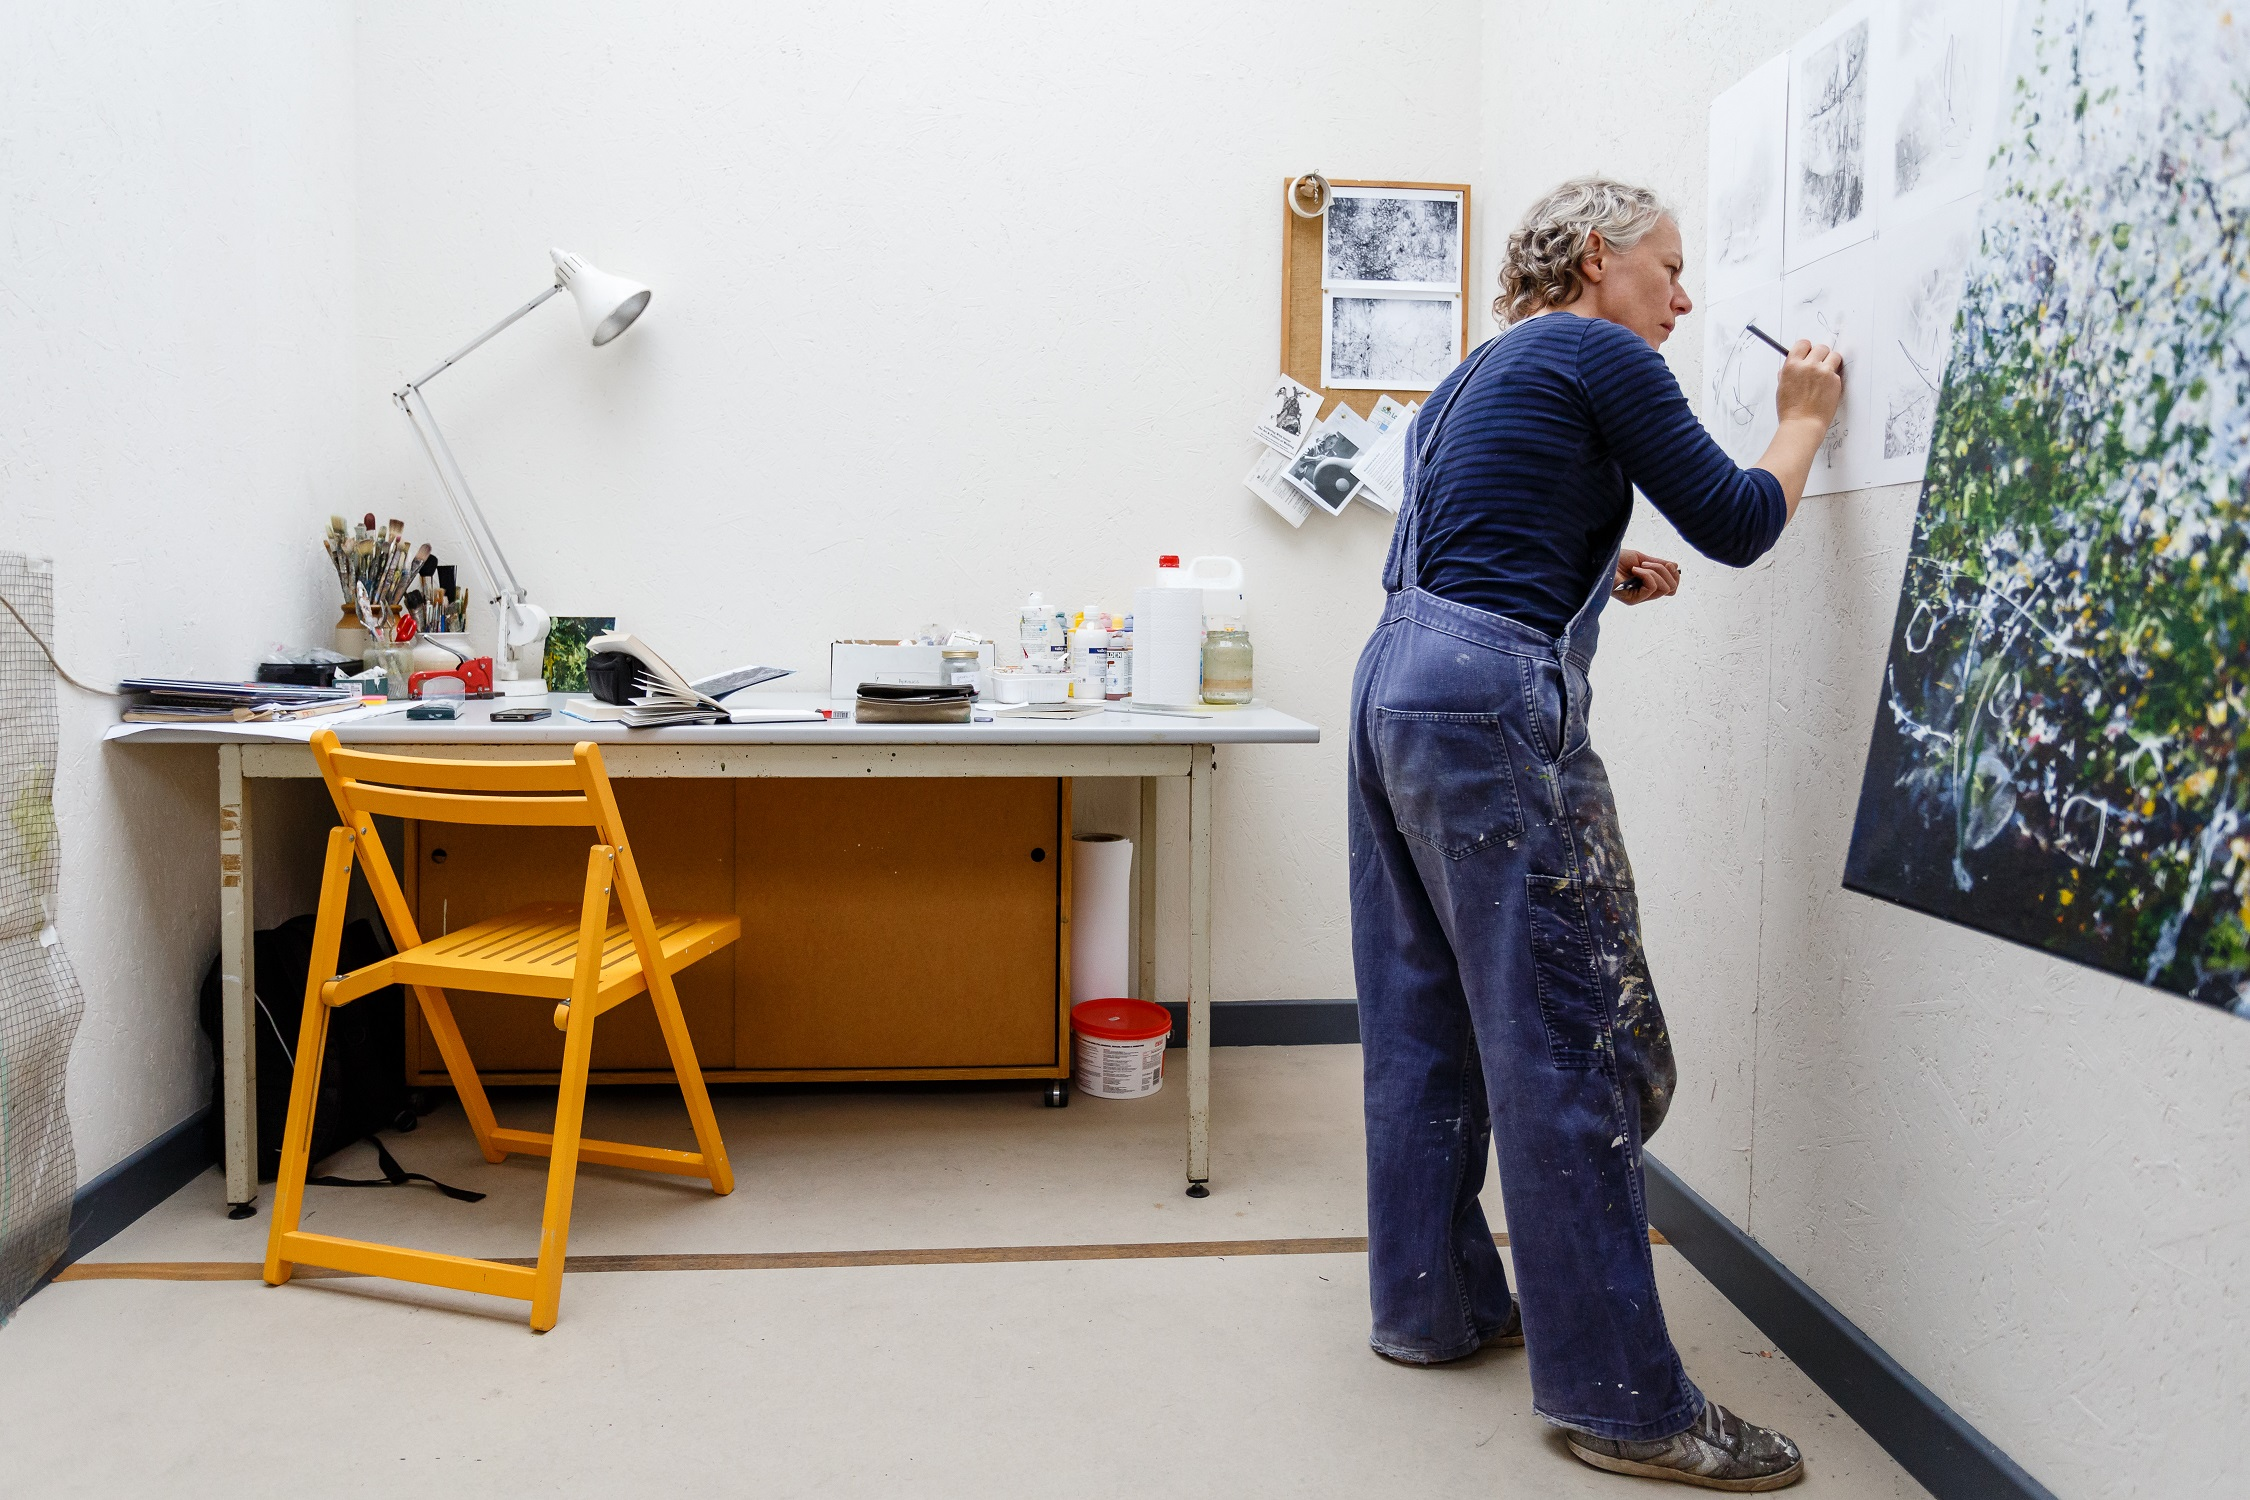 Artist Helen Thomas in her studio